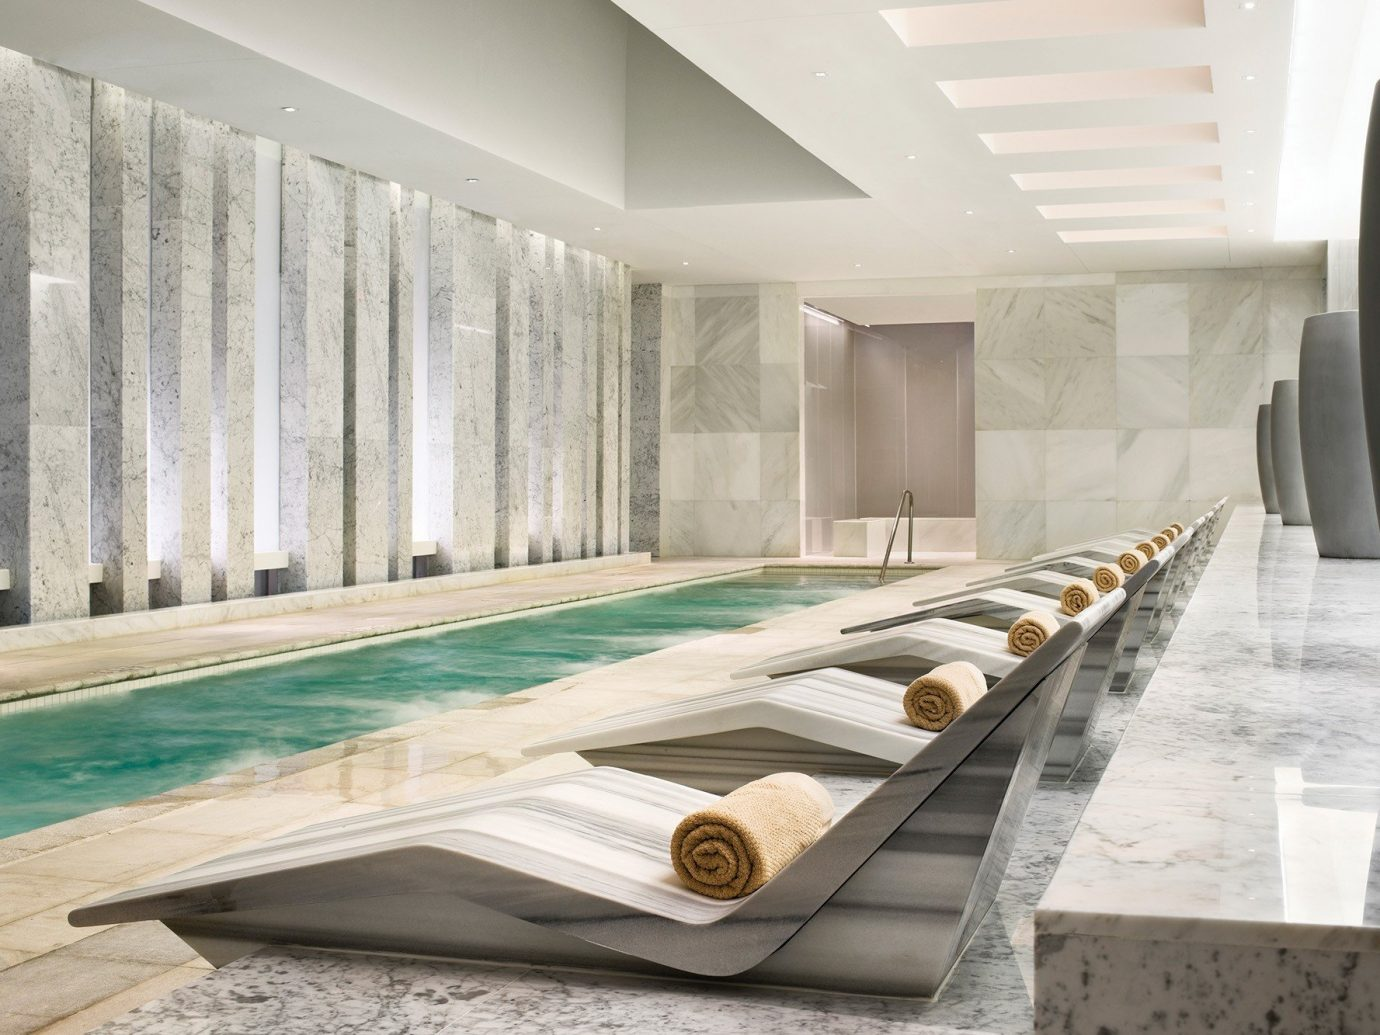 Food + Drink Girls Getaways Hotels Jetsetter Guides shopping Style + Design Weekend Getaways indoor Architecture interior design daylighting swimming pool angle amenity stone furniture